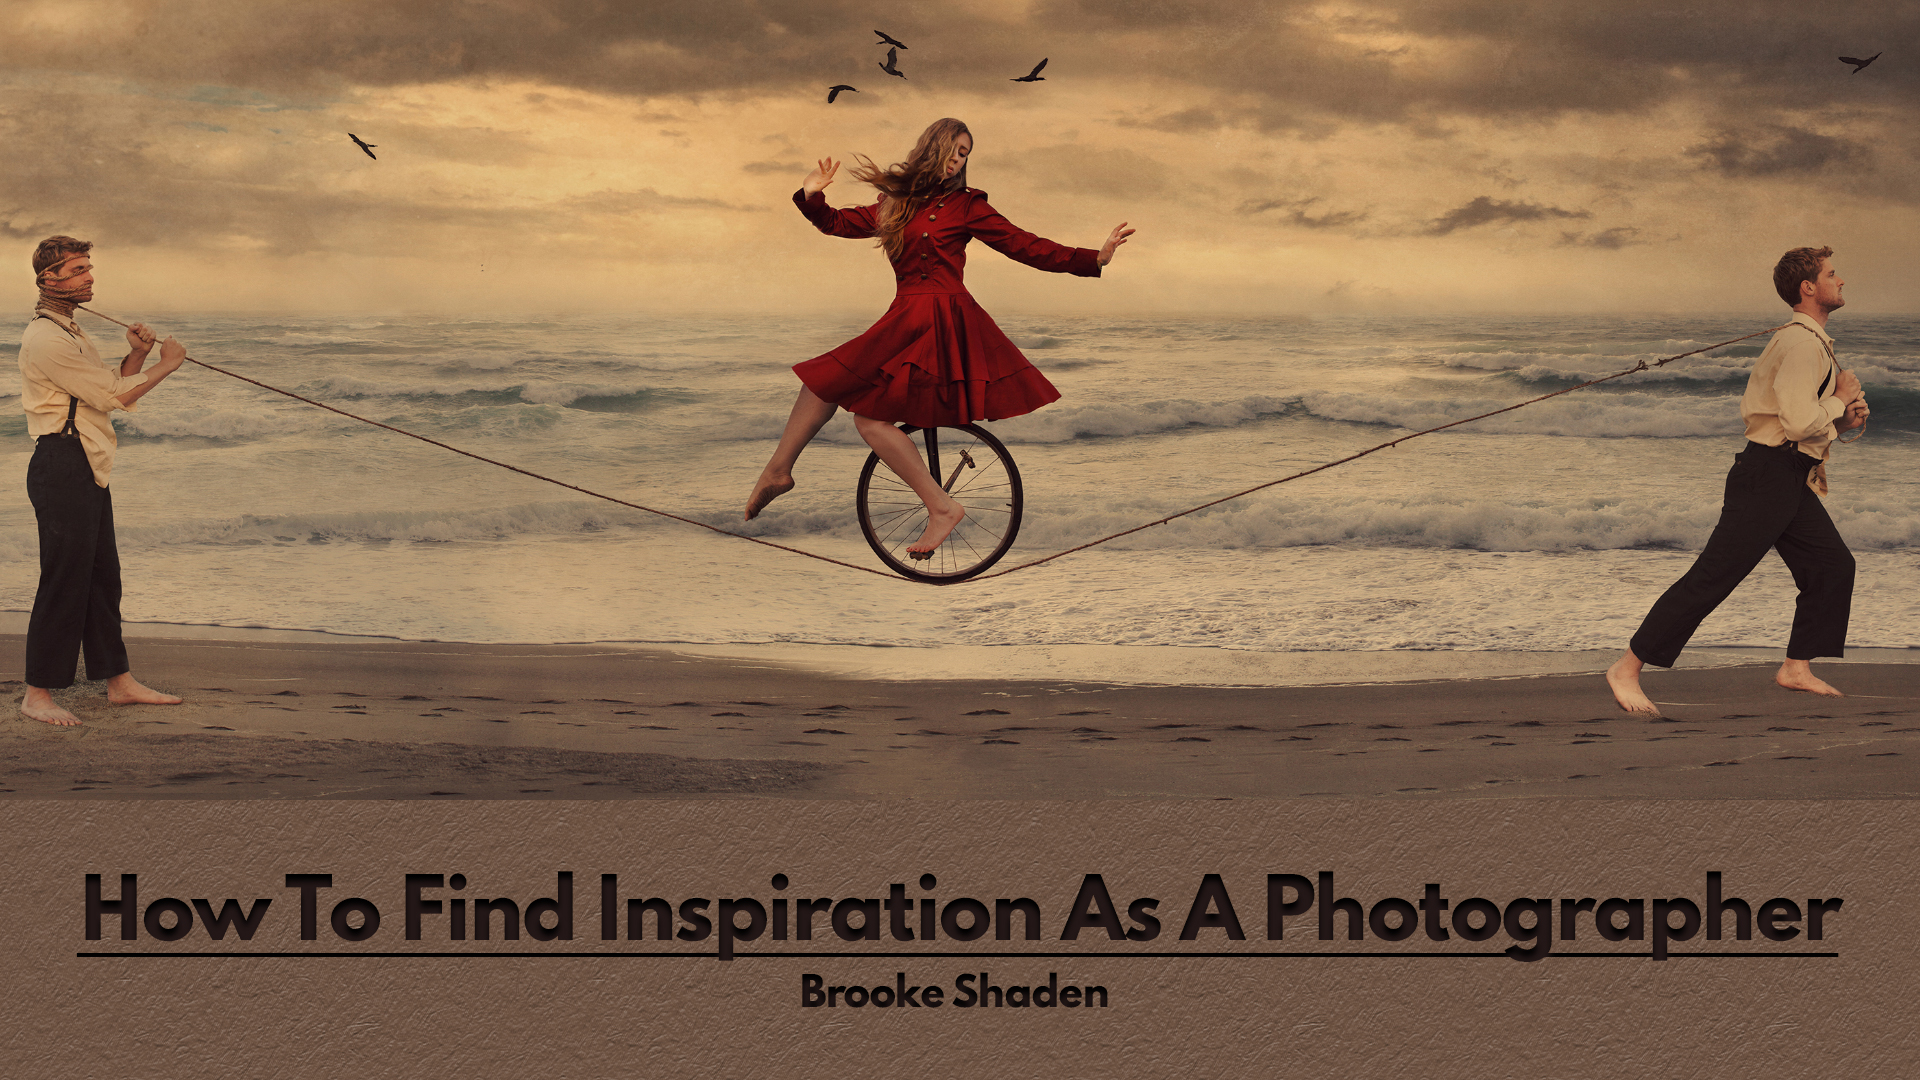 How To Find Inspiration As A Photographer By Brooke Shaden